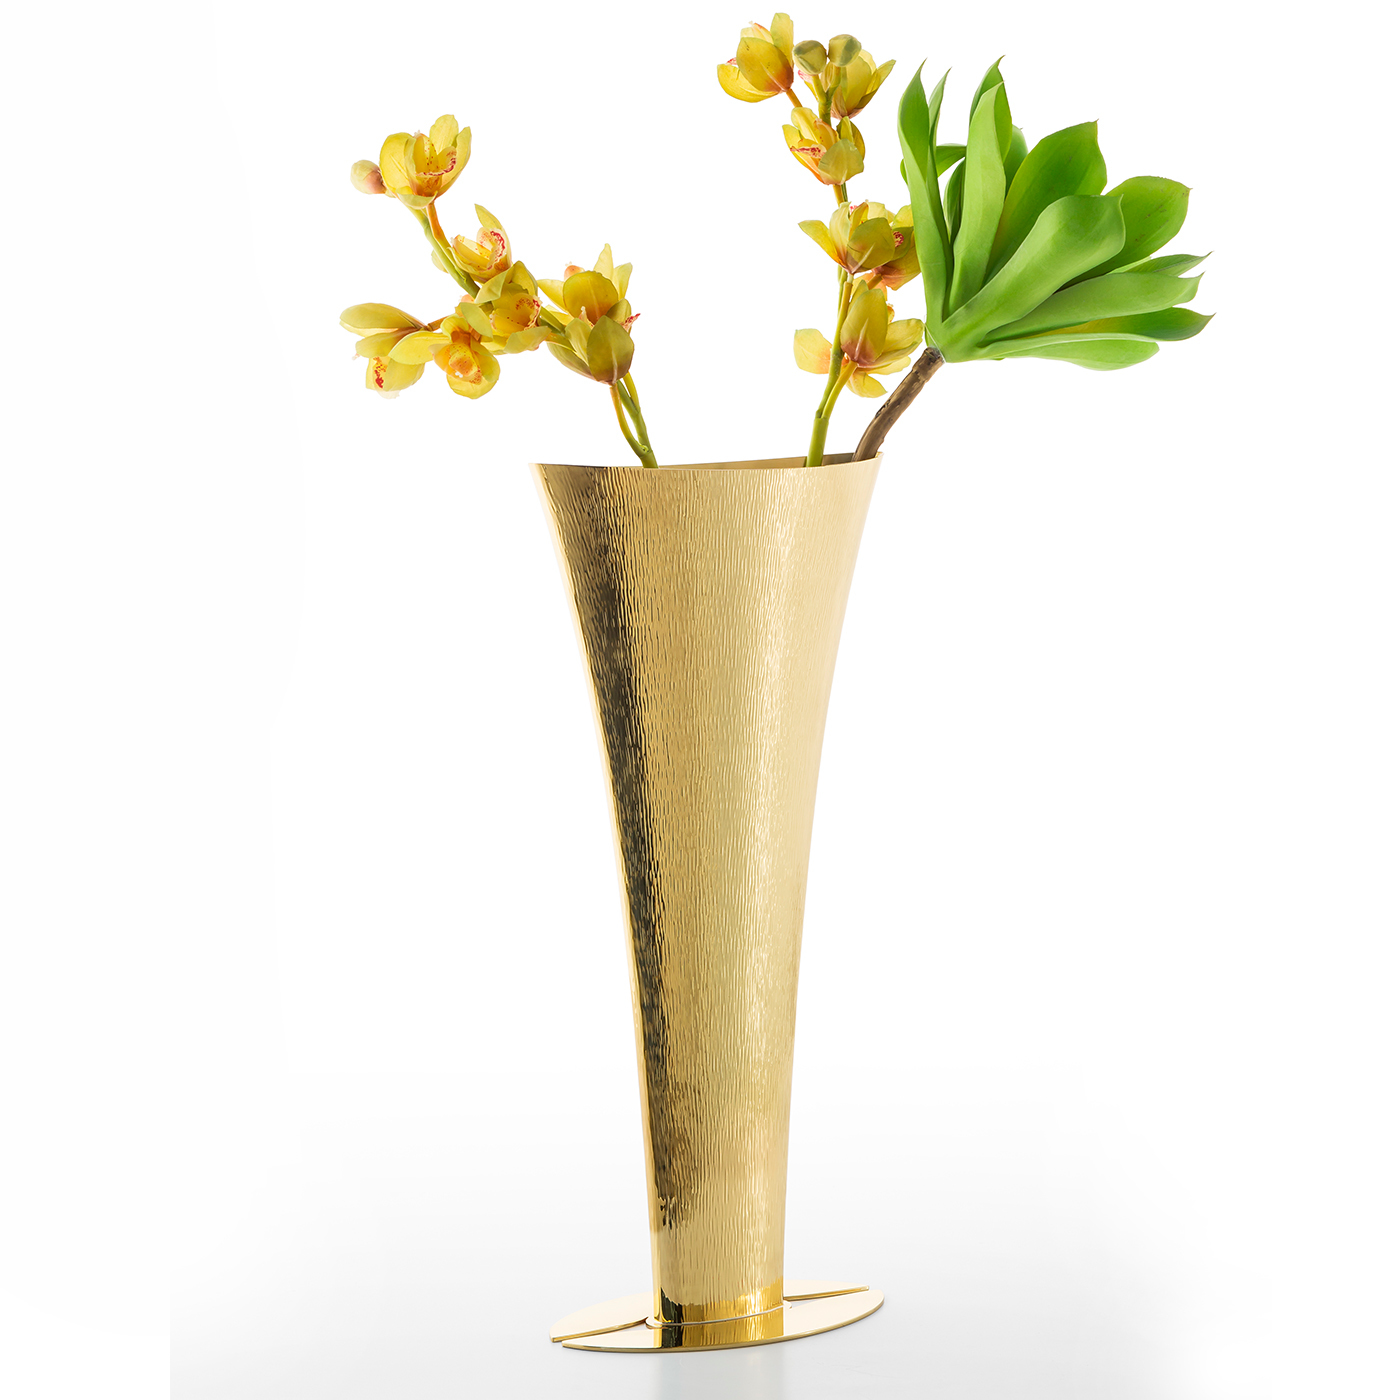 Naco Vase - The lengthy heating process of this vase's brass creates its distinct shape while successive rounds of hammering elaborately decorate the exterior. The flared shape rests on a hand-modelled base. Polished and varnished with a special protective coating, this elegant piece will enliven any corner of the house. The vase is also available in silver alloy and sterling silver | Matter of Stuff